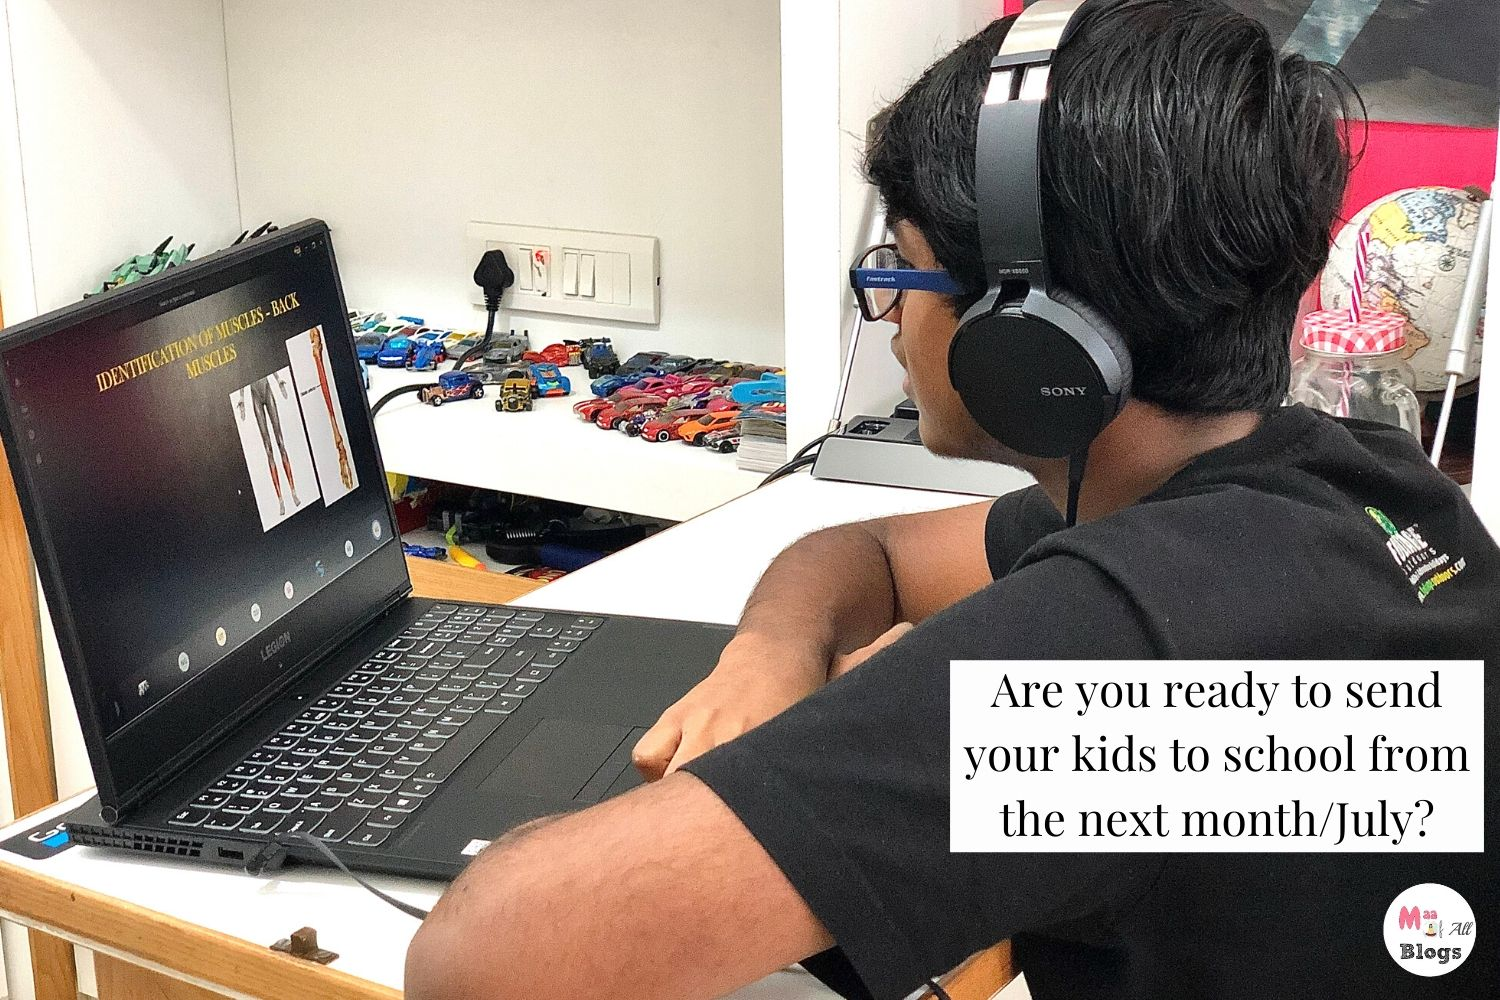 Online Schools Or Are You Ready To Send Your Kids To School From The Next Month?